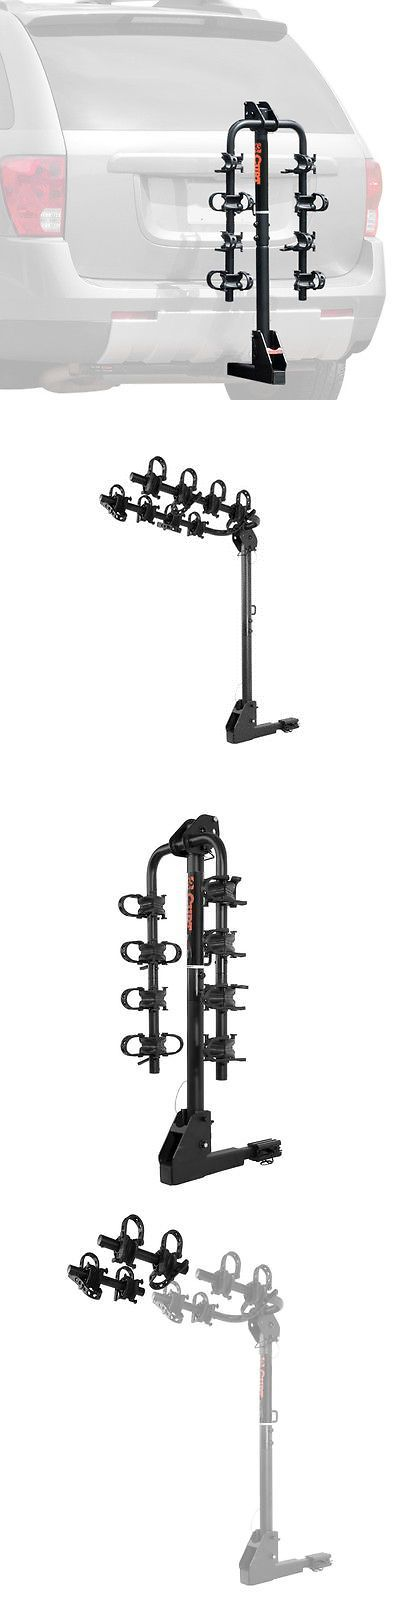 Car and Truck Racks 177849: Curt 18030 - Extendable Hitch Mount Bike Rack BUY IT NOW ONLY: $126.0